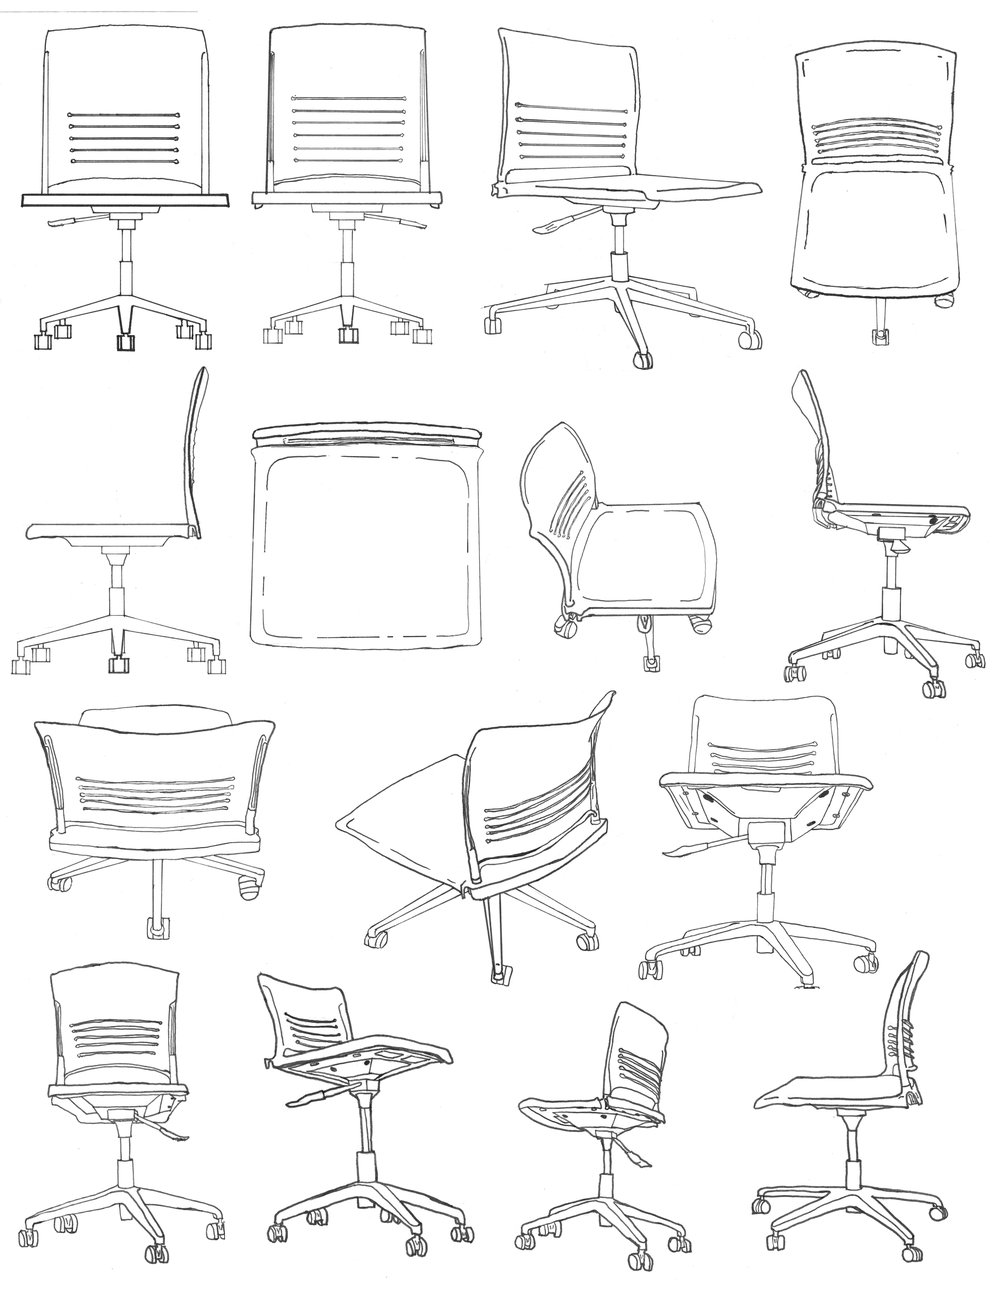 OFFICE CHAIR SKETCHES